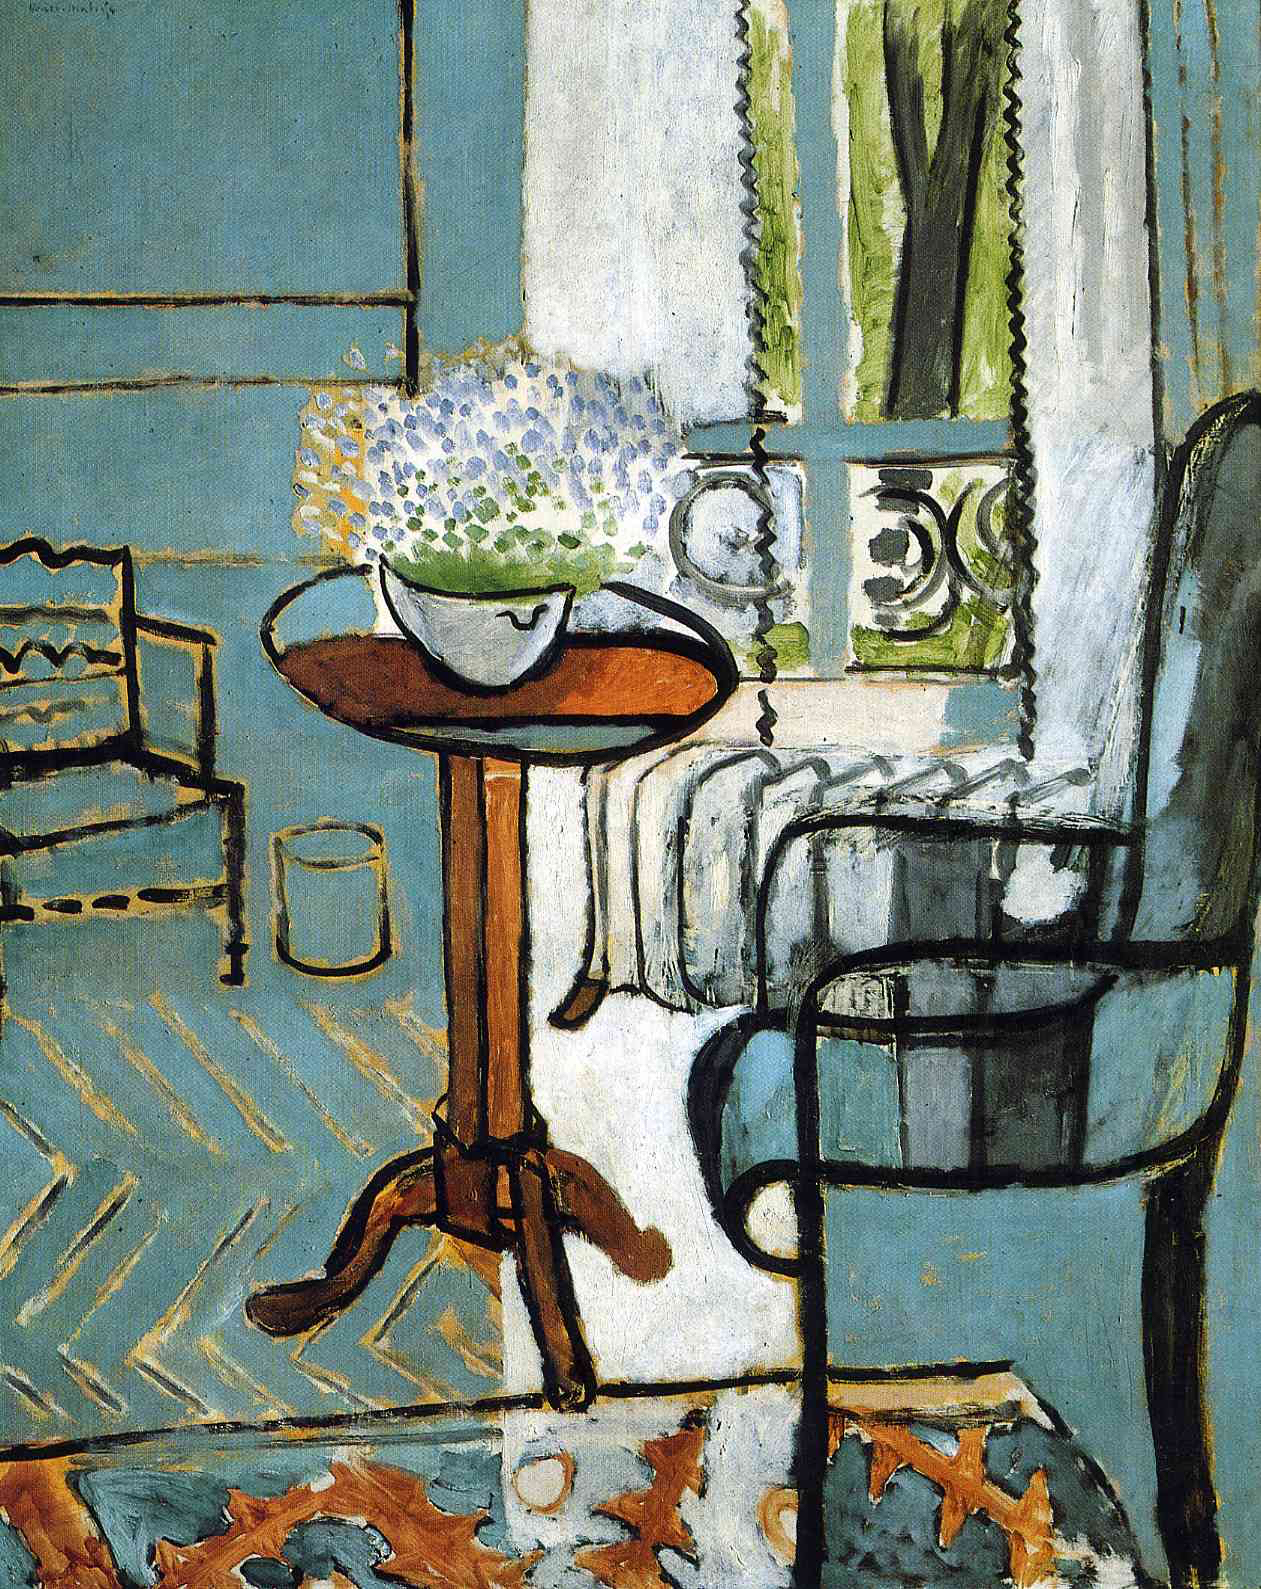 Epph matisse s the window 1916 for Par la fenetre ouverte comptine